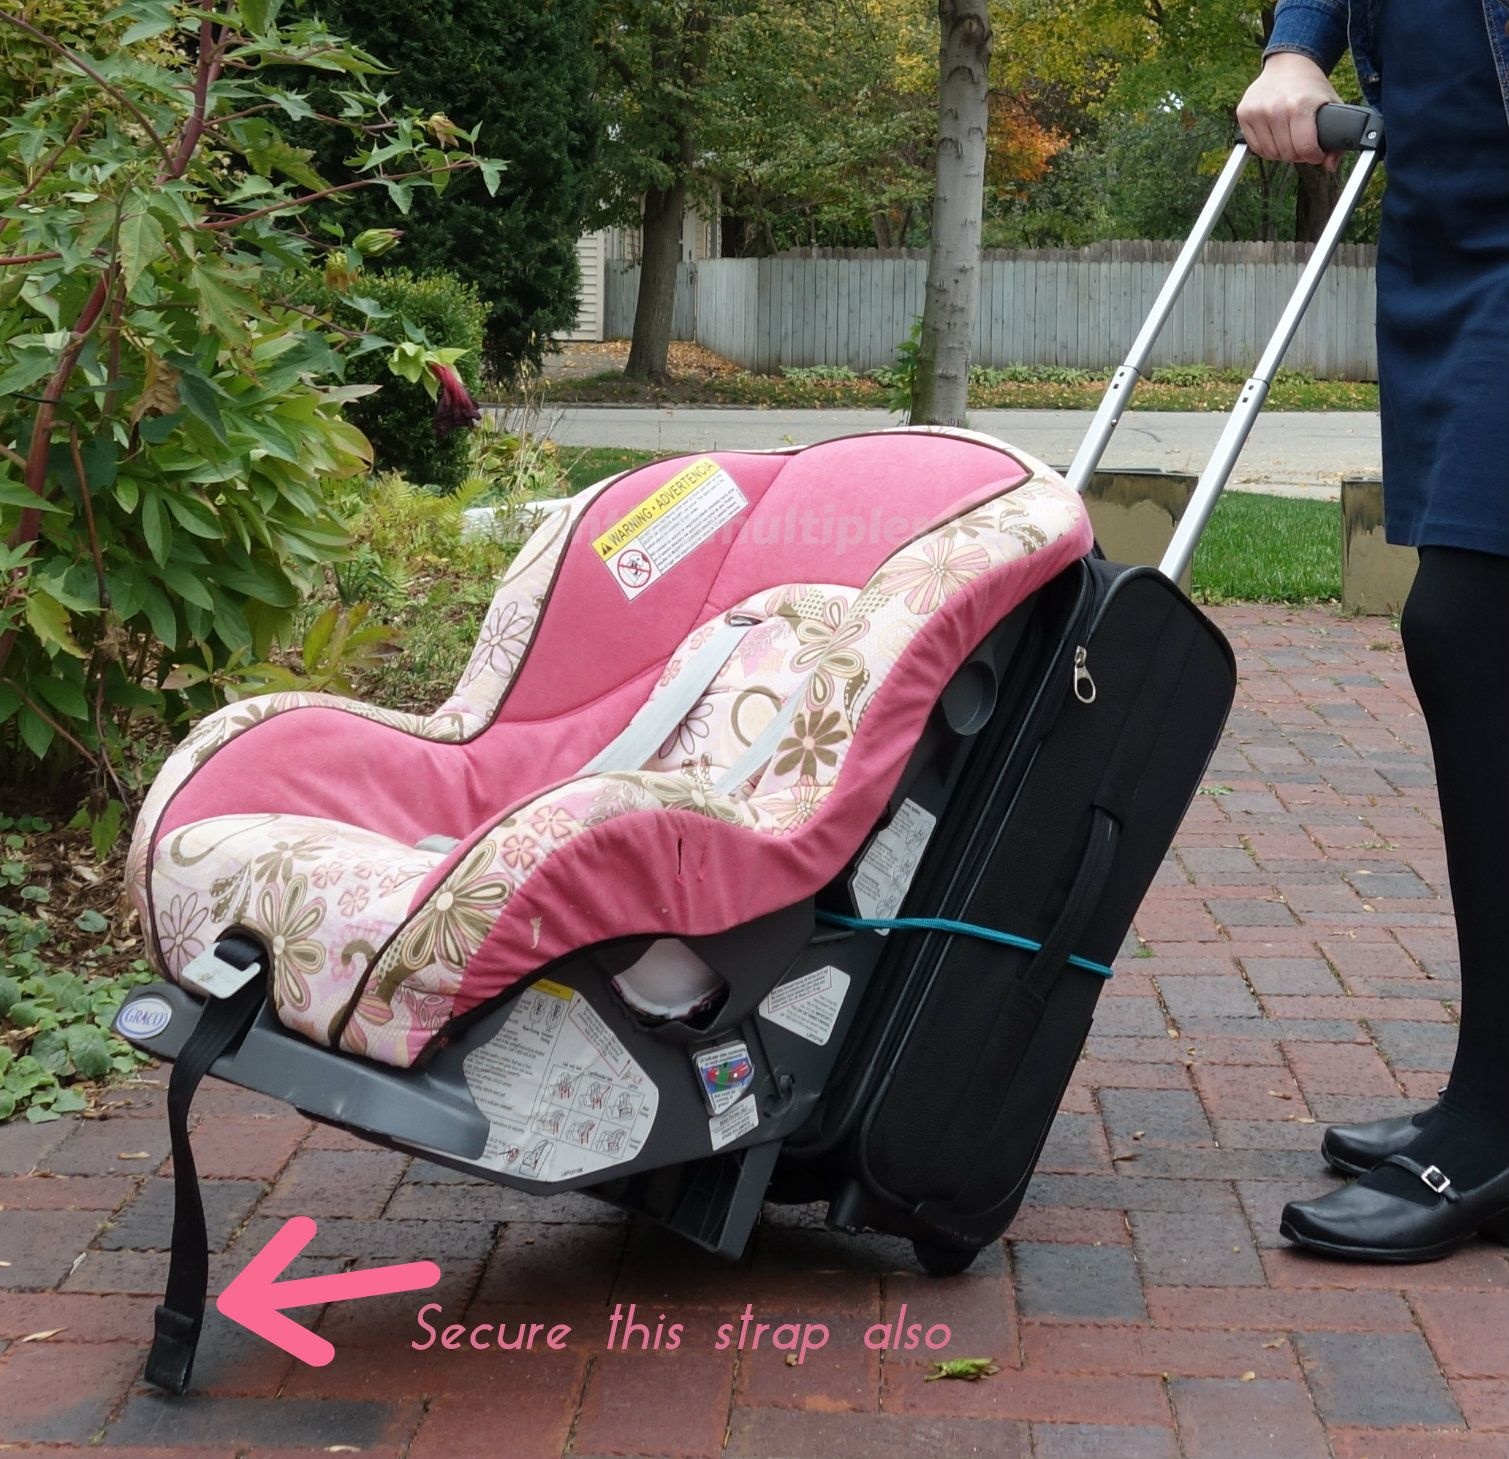 Secure A Carseat To A Suitcase With A Bungee Cord When